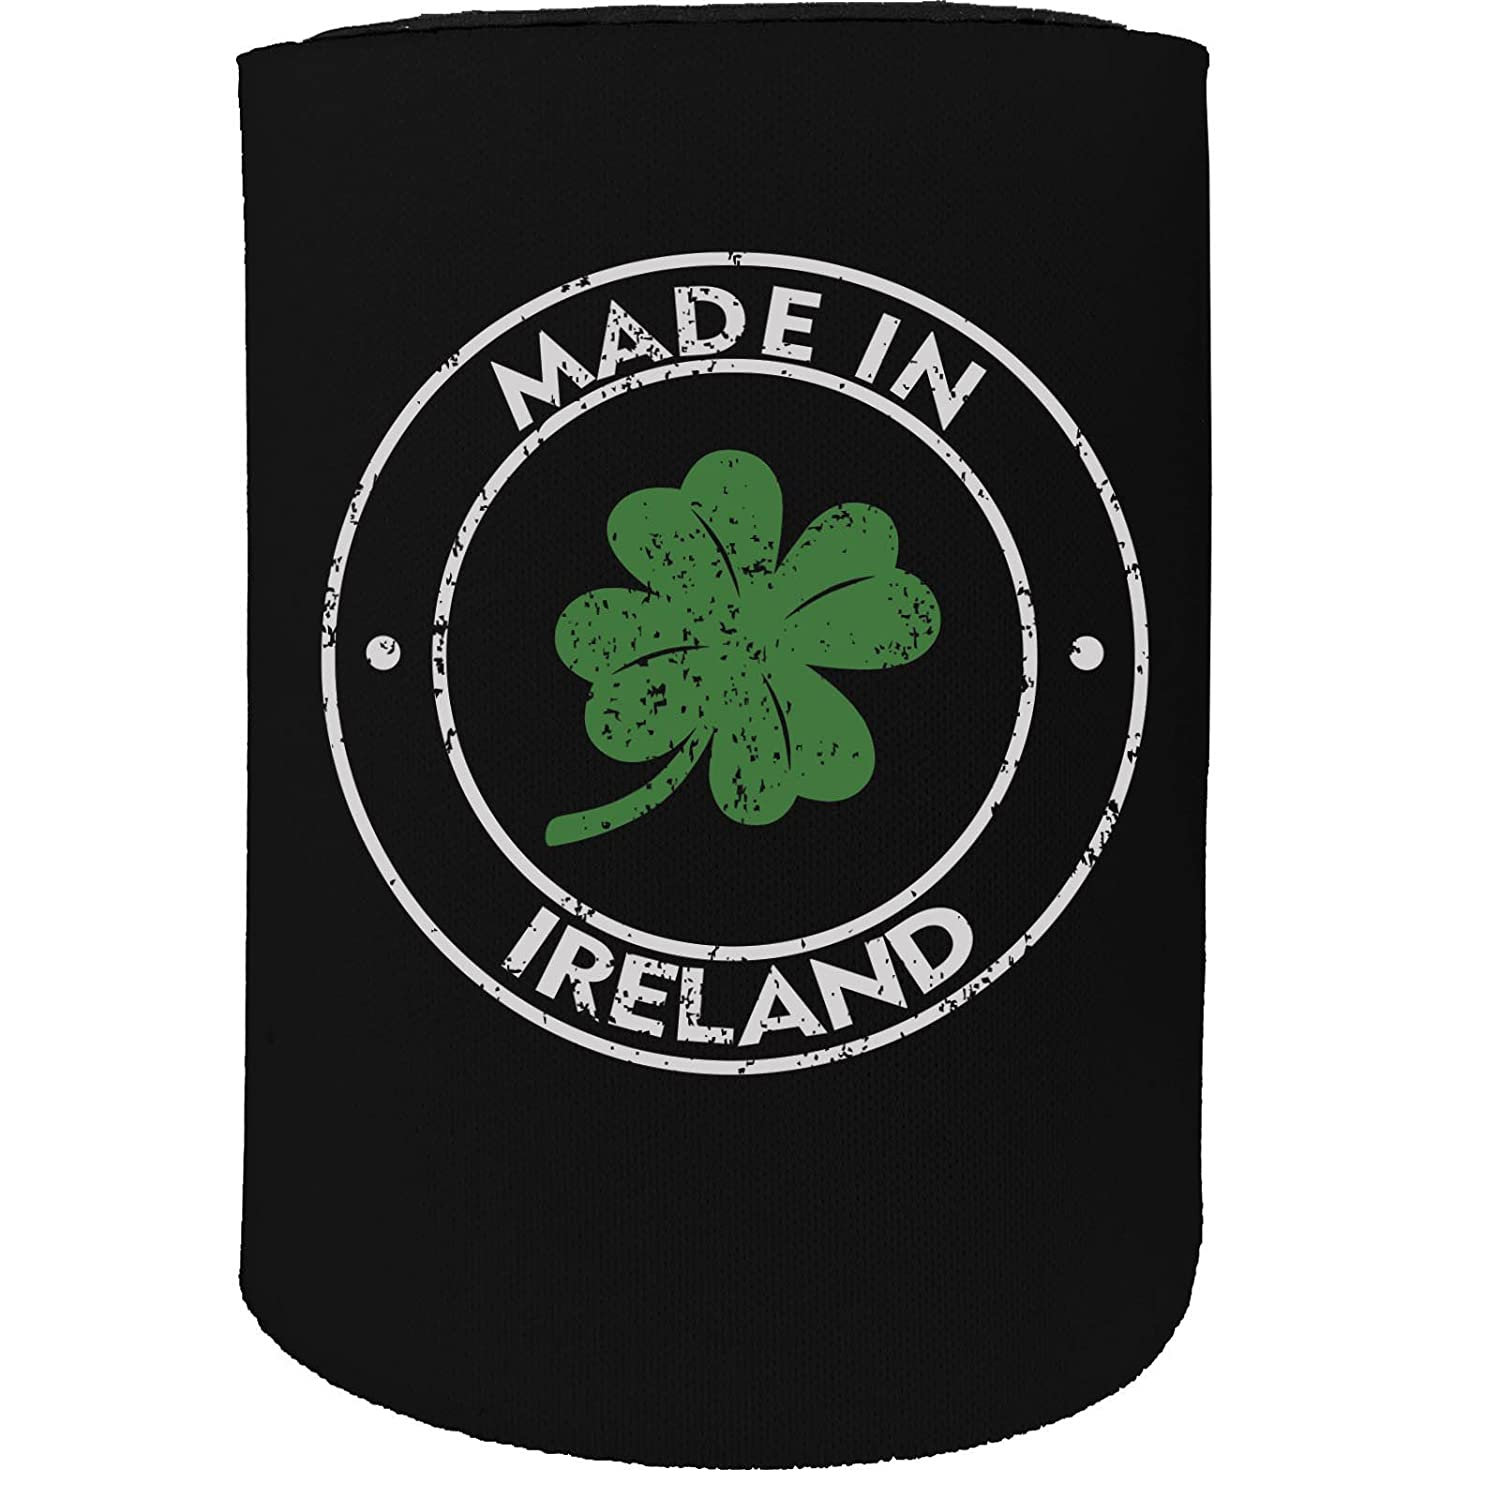 123t Stubby Holder - Made in Ireland - Funny Novelty Birthday Gift Joke Beer Can Bottle Coolie Koozie Stubbie